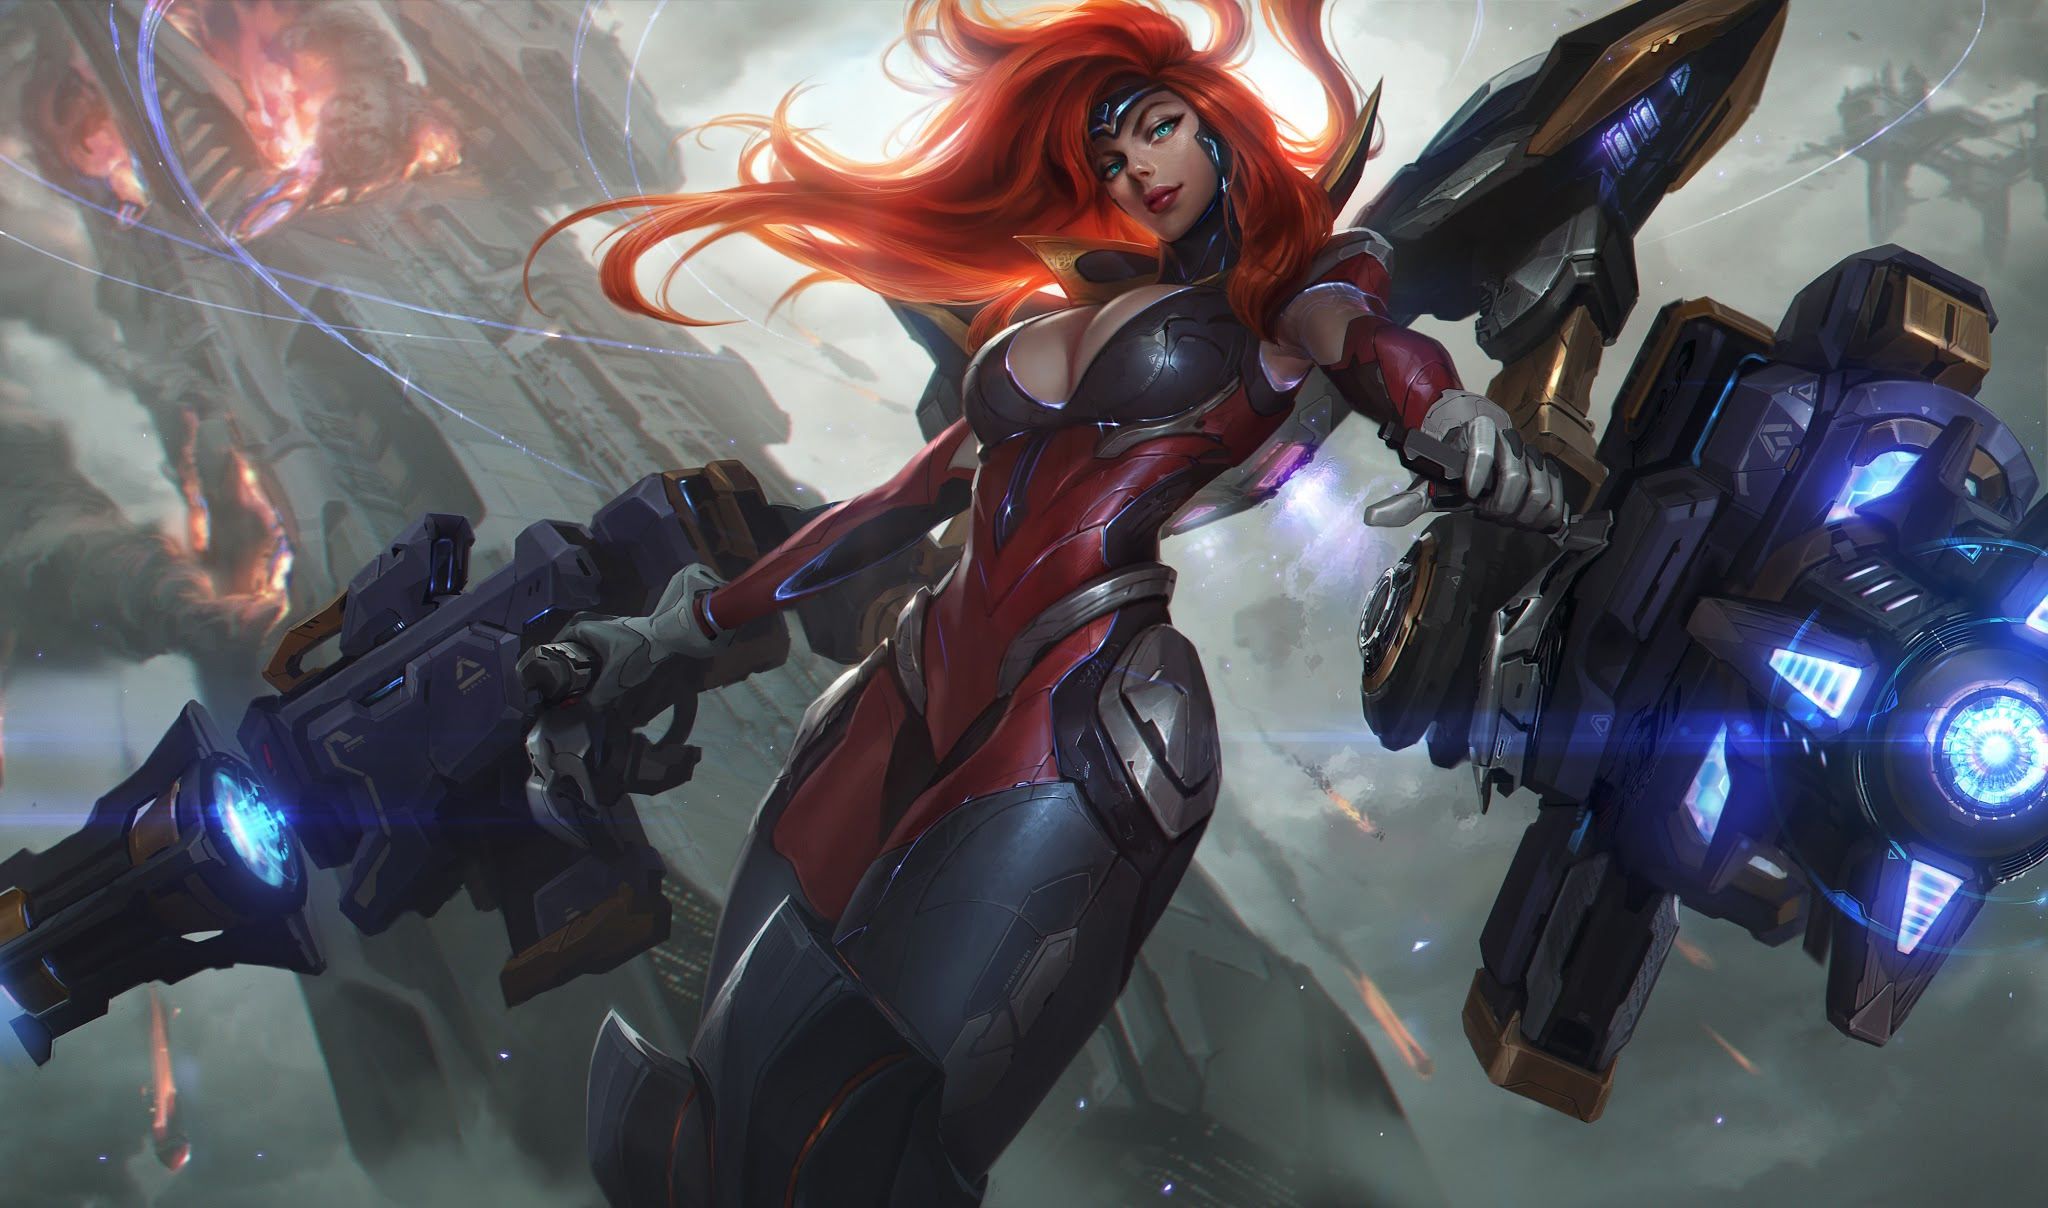 d6aad4a5ca8  Deleted  Next Ultimate Skin  Gun Goddess Miss Fortune